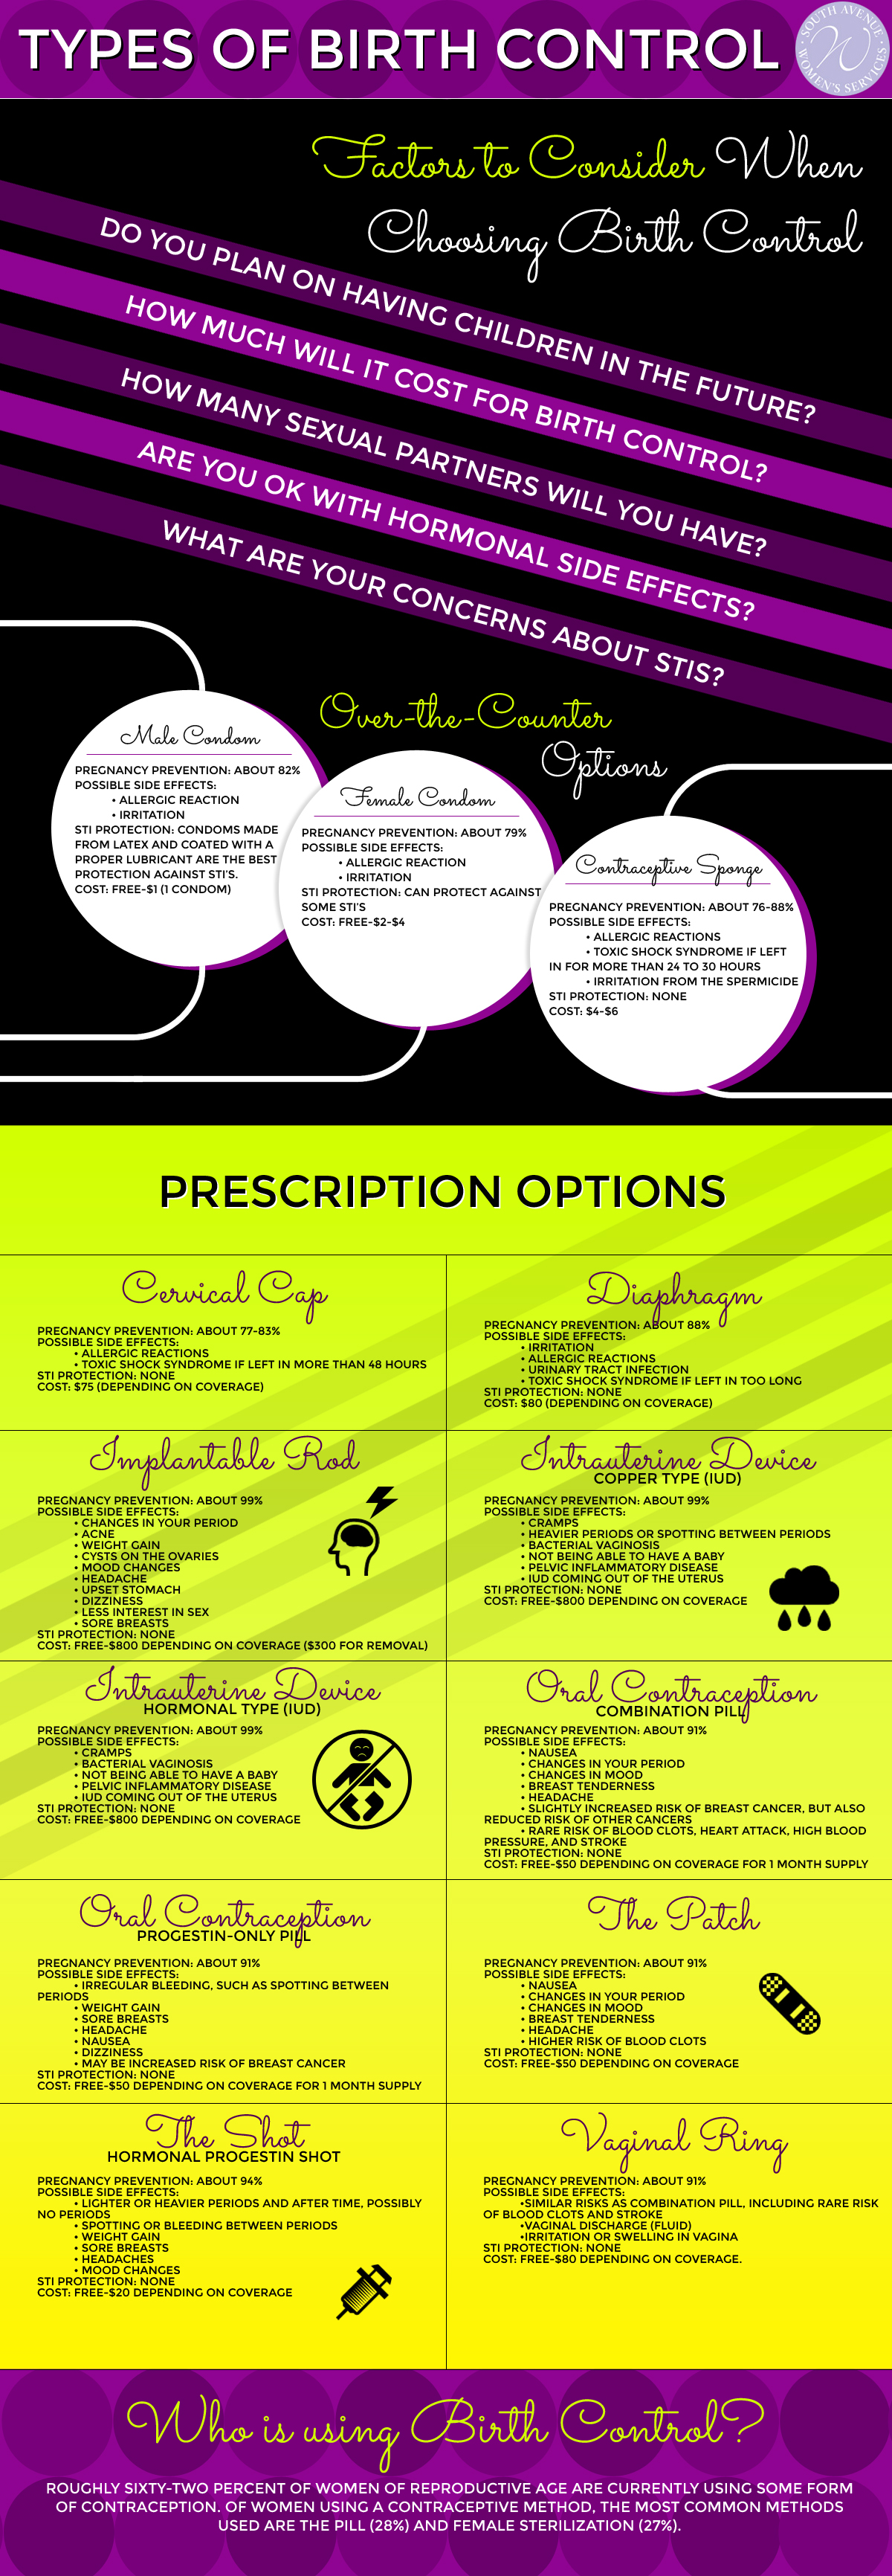 types of birth control infographic